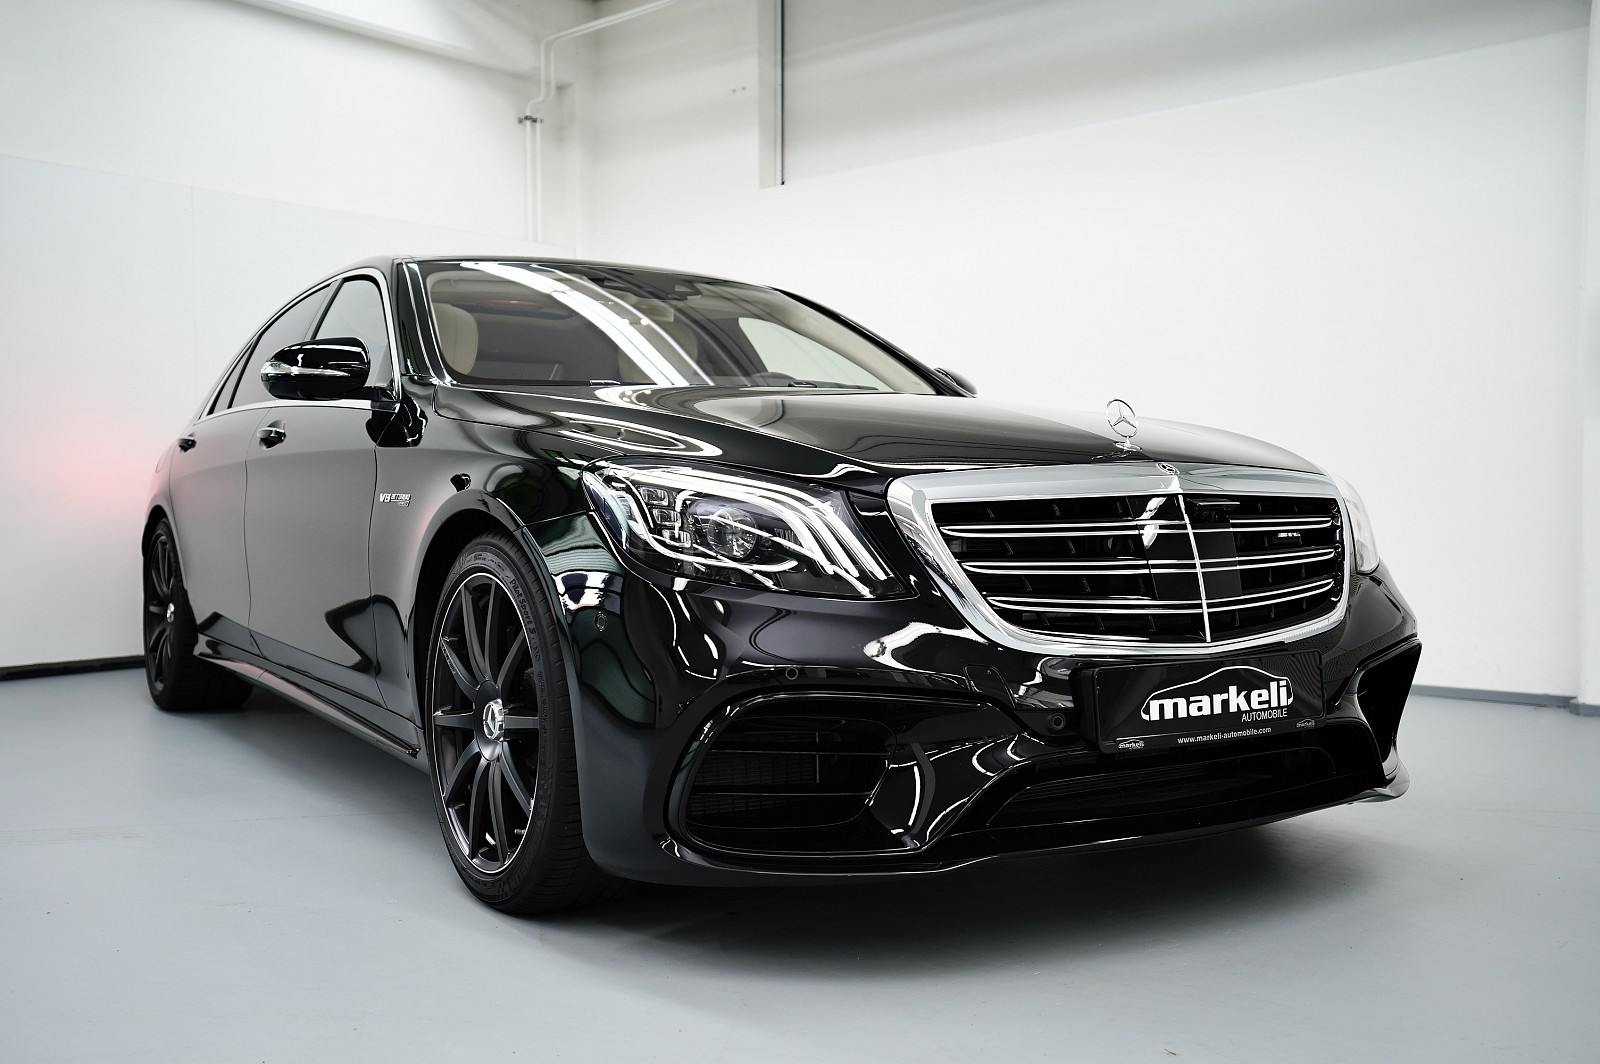 Mercedes-amg S 63 4matic+ Long  AMG EXKLUSIV-PAKET&drivers package + burmester high-end 3d